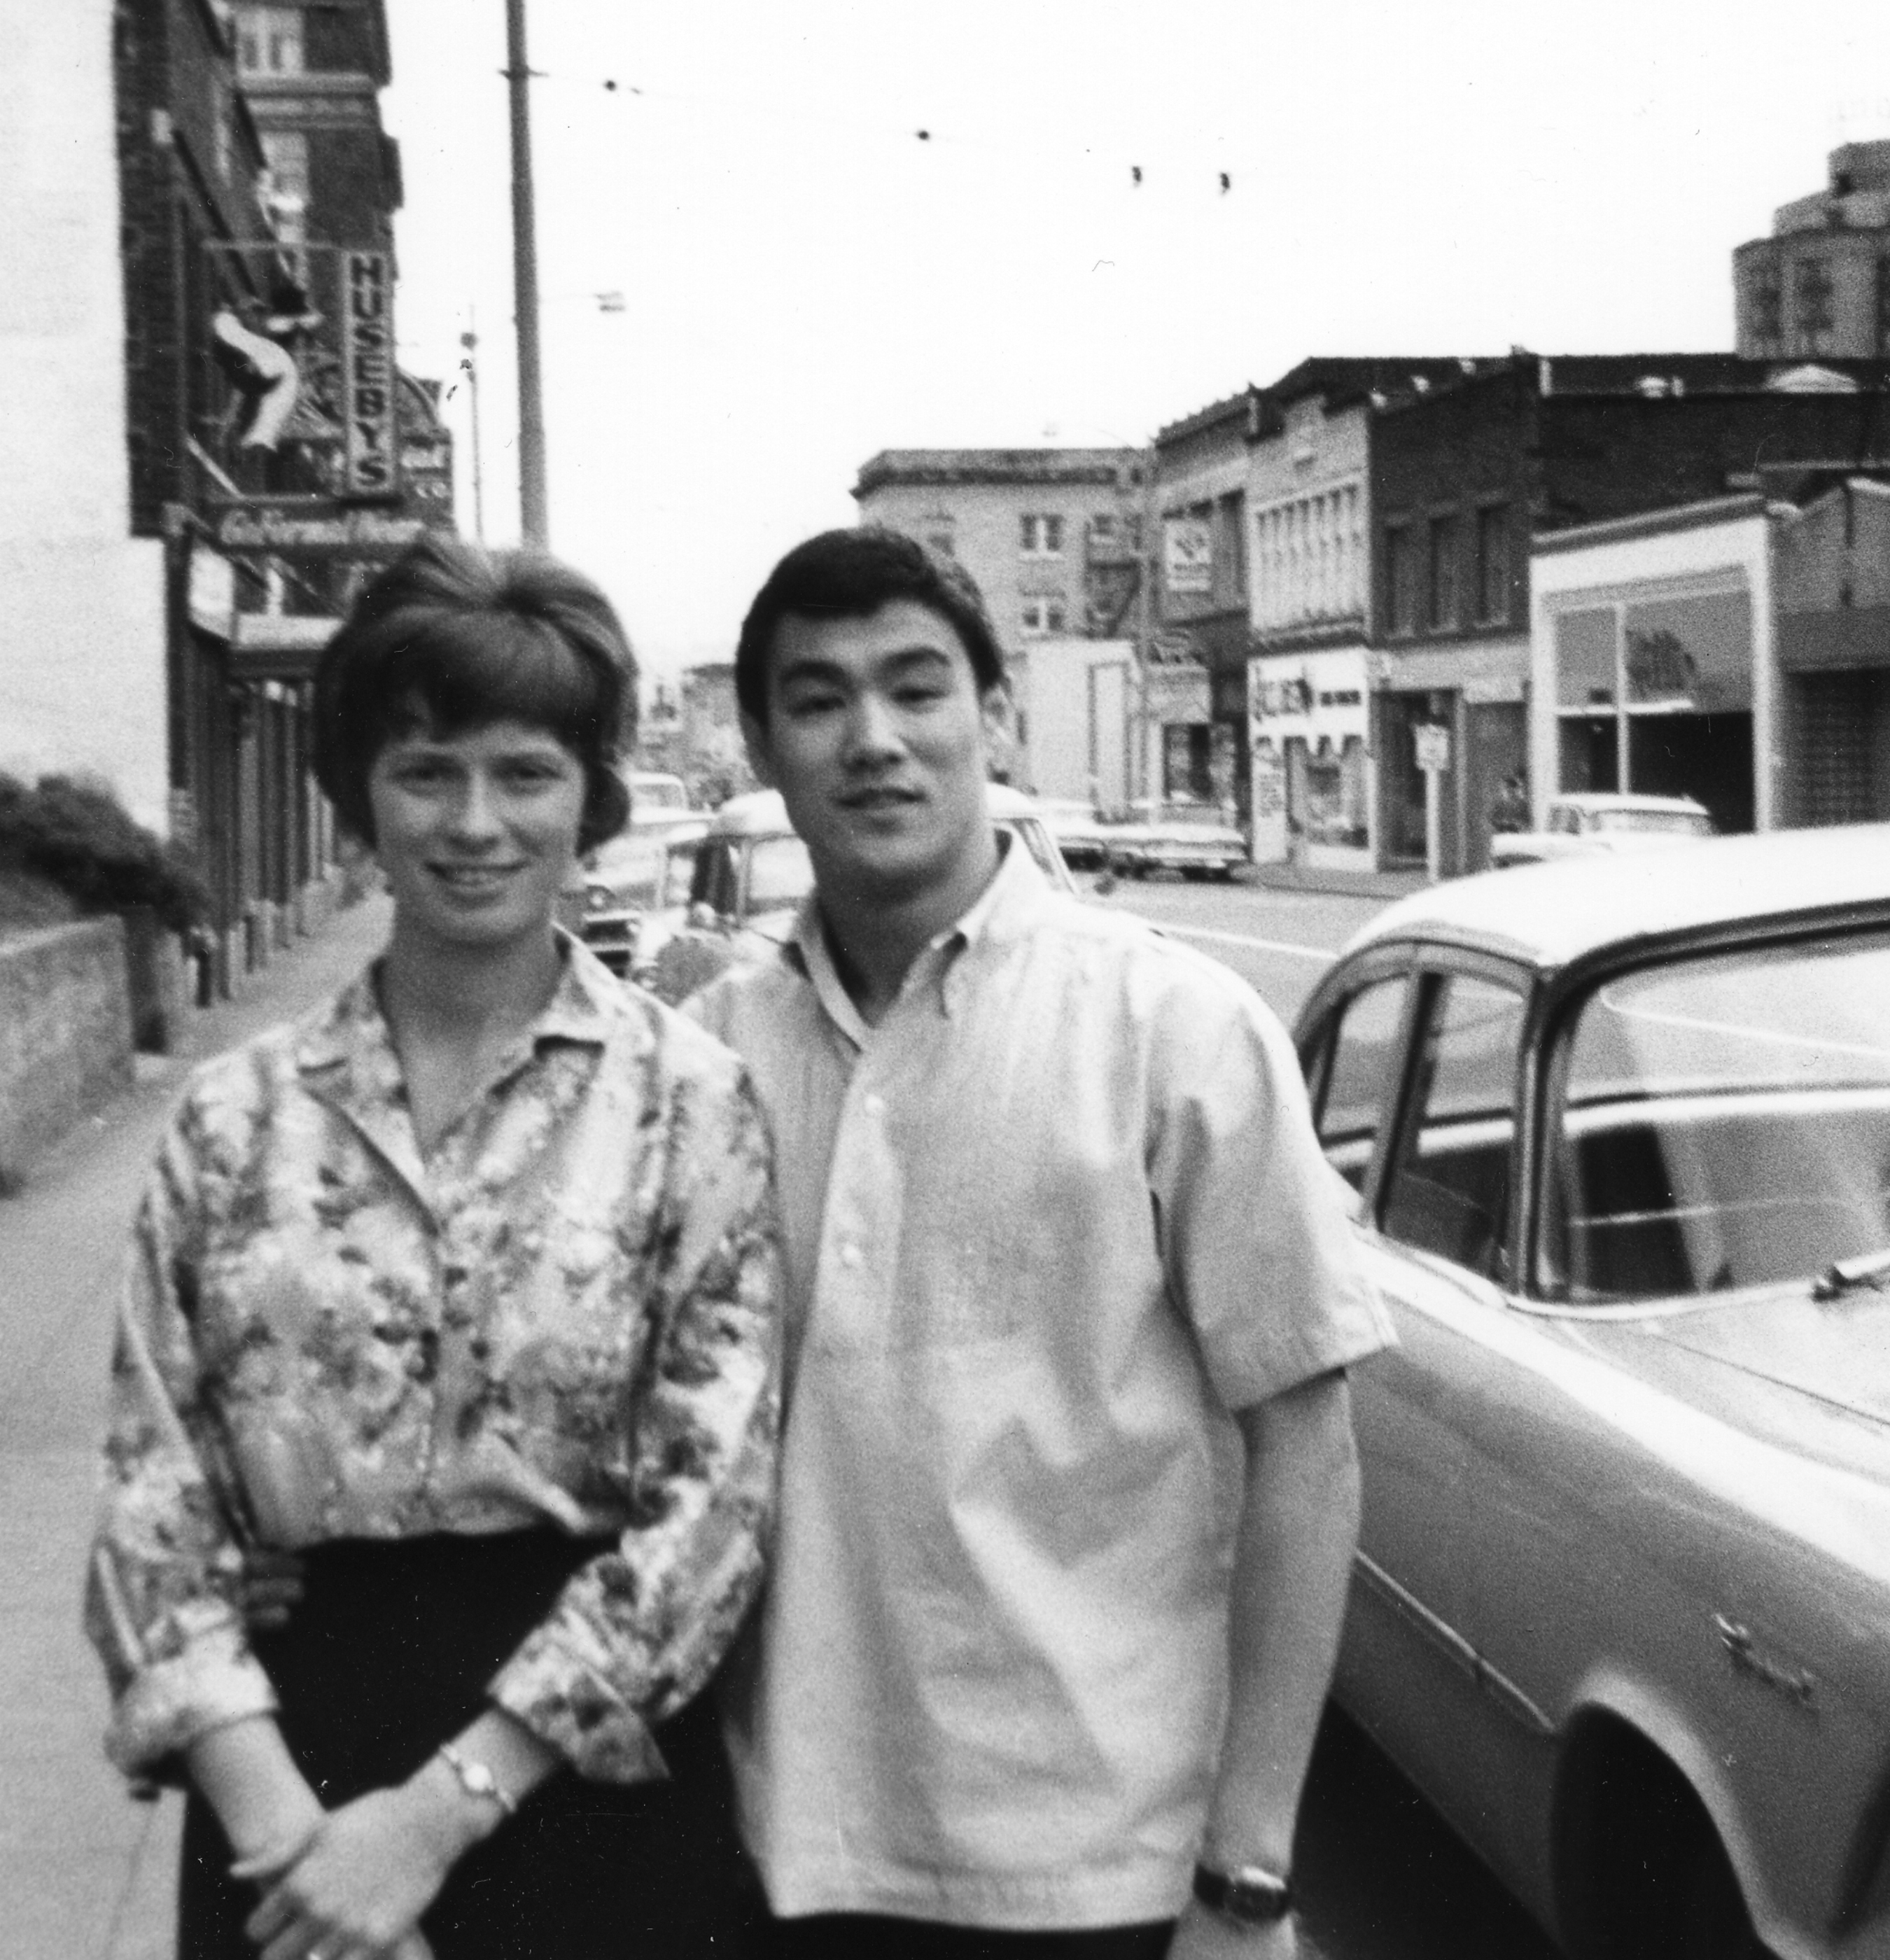 Bruce Lee with Linda Emery Credit: courtesy of Wing Luke Museum